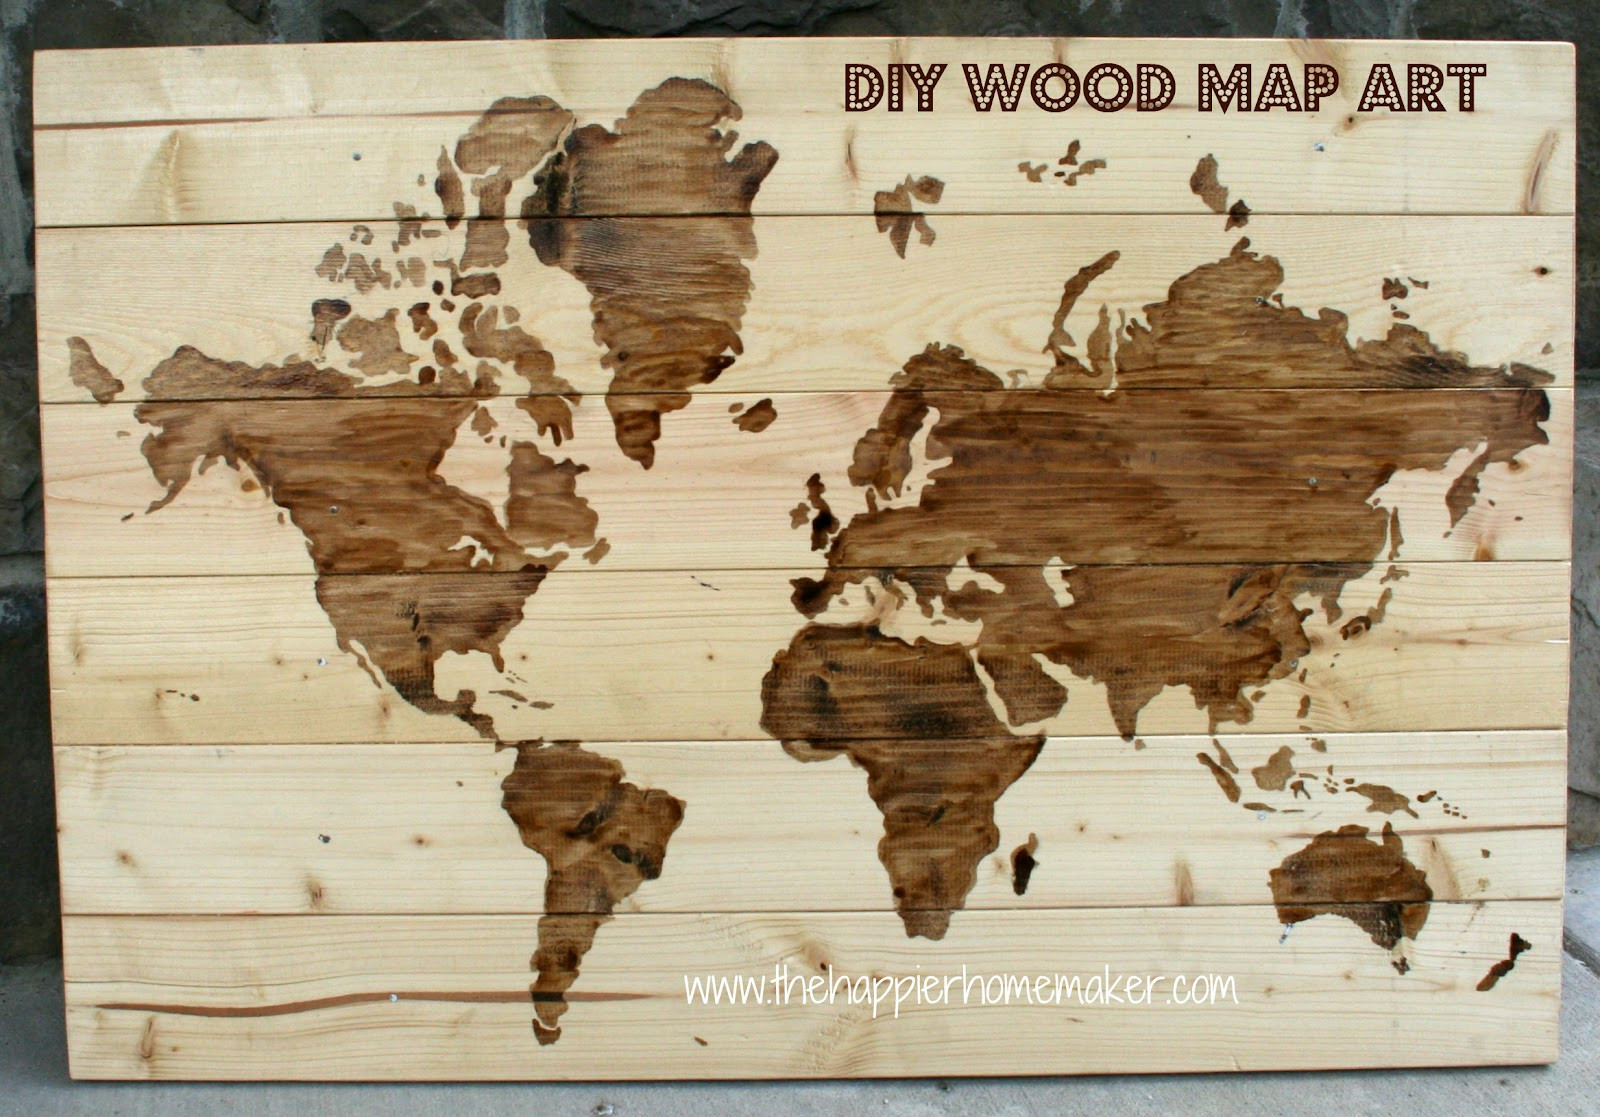 DIY Wood Art Projects  DIY Wooden World Map Art